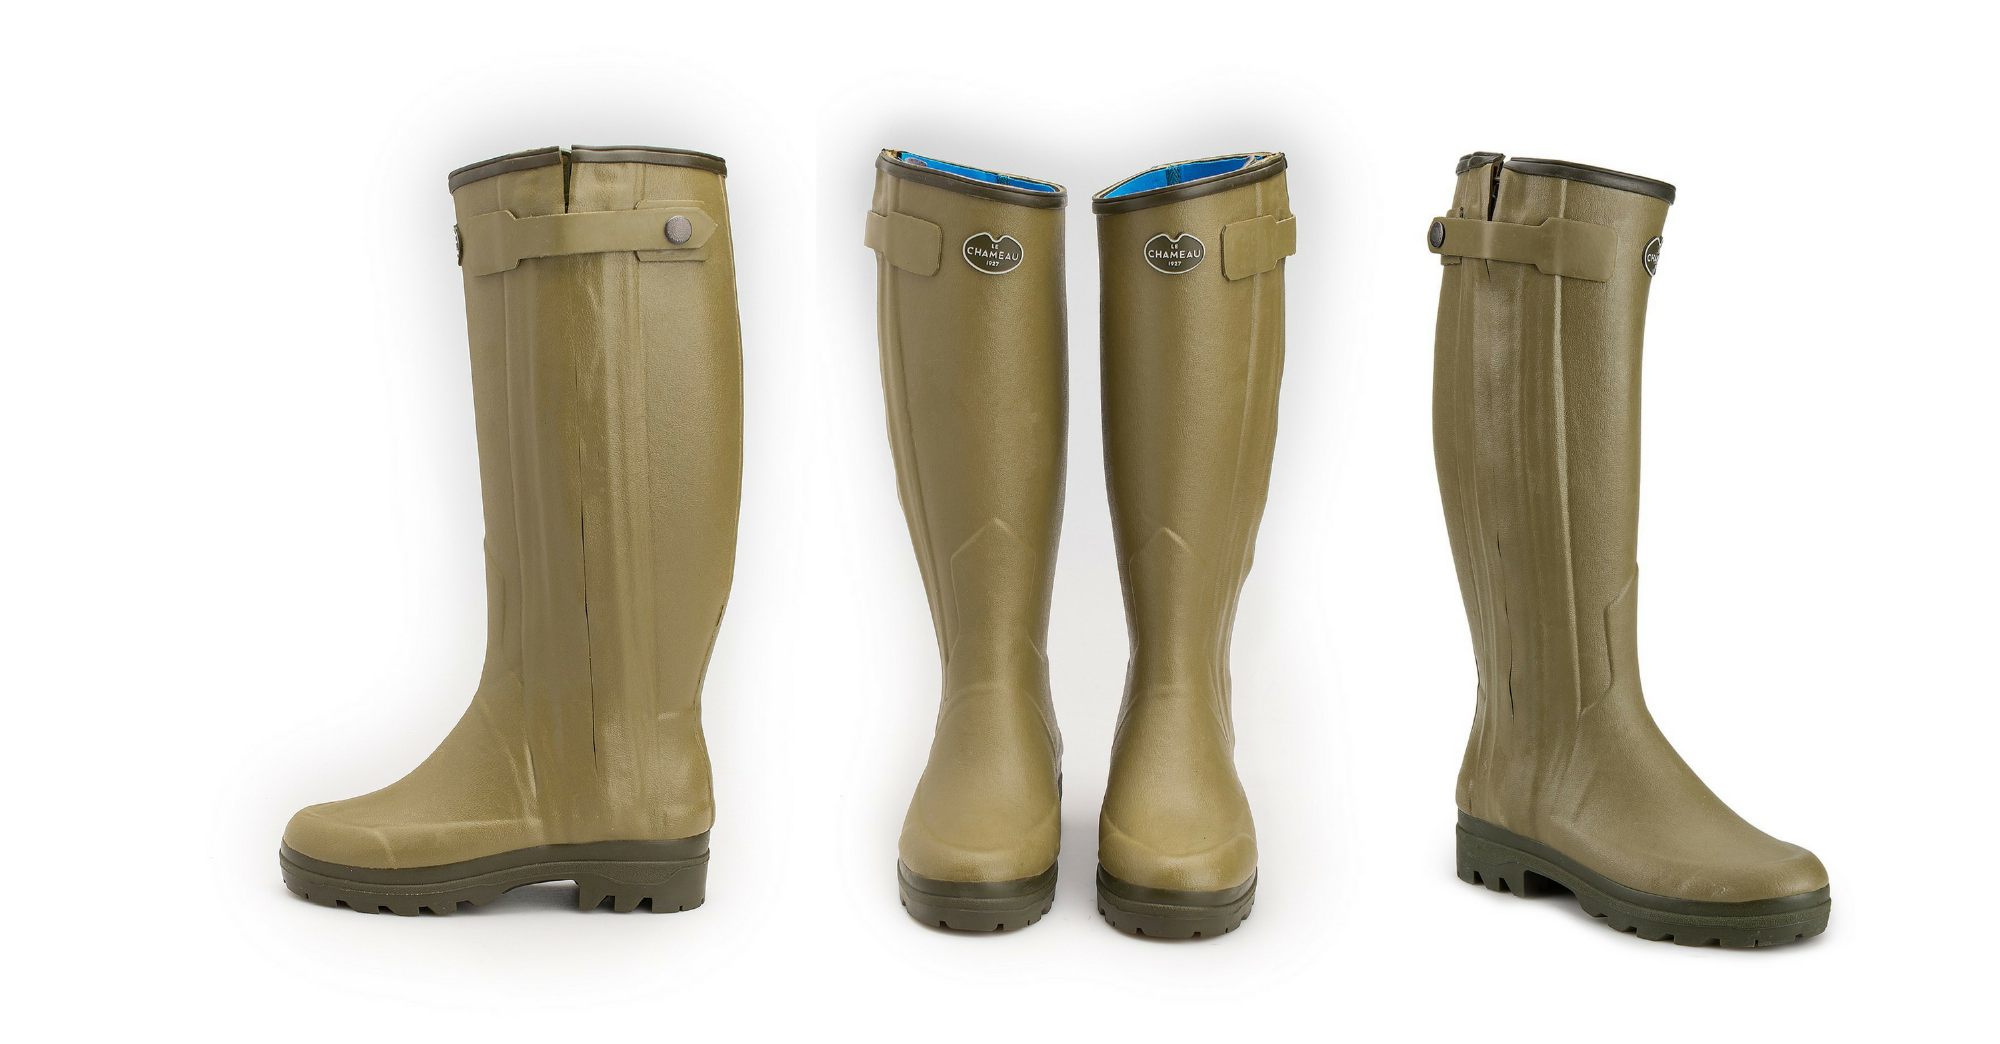 Le chameau chasseur ladies side zip wellies